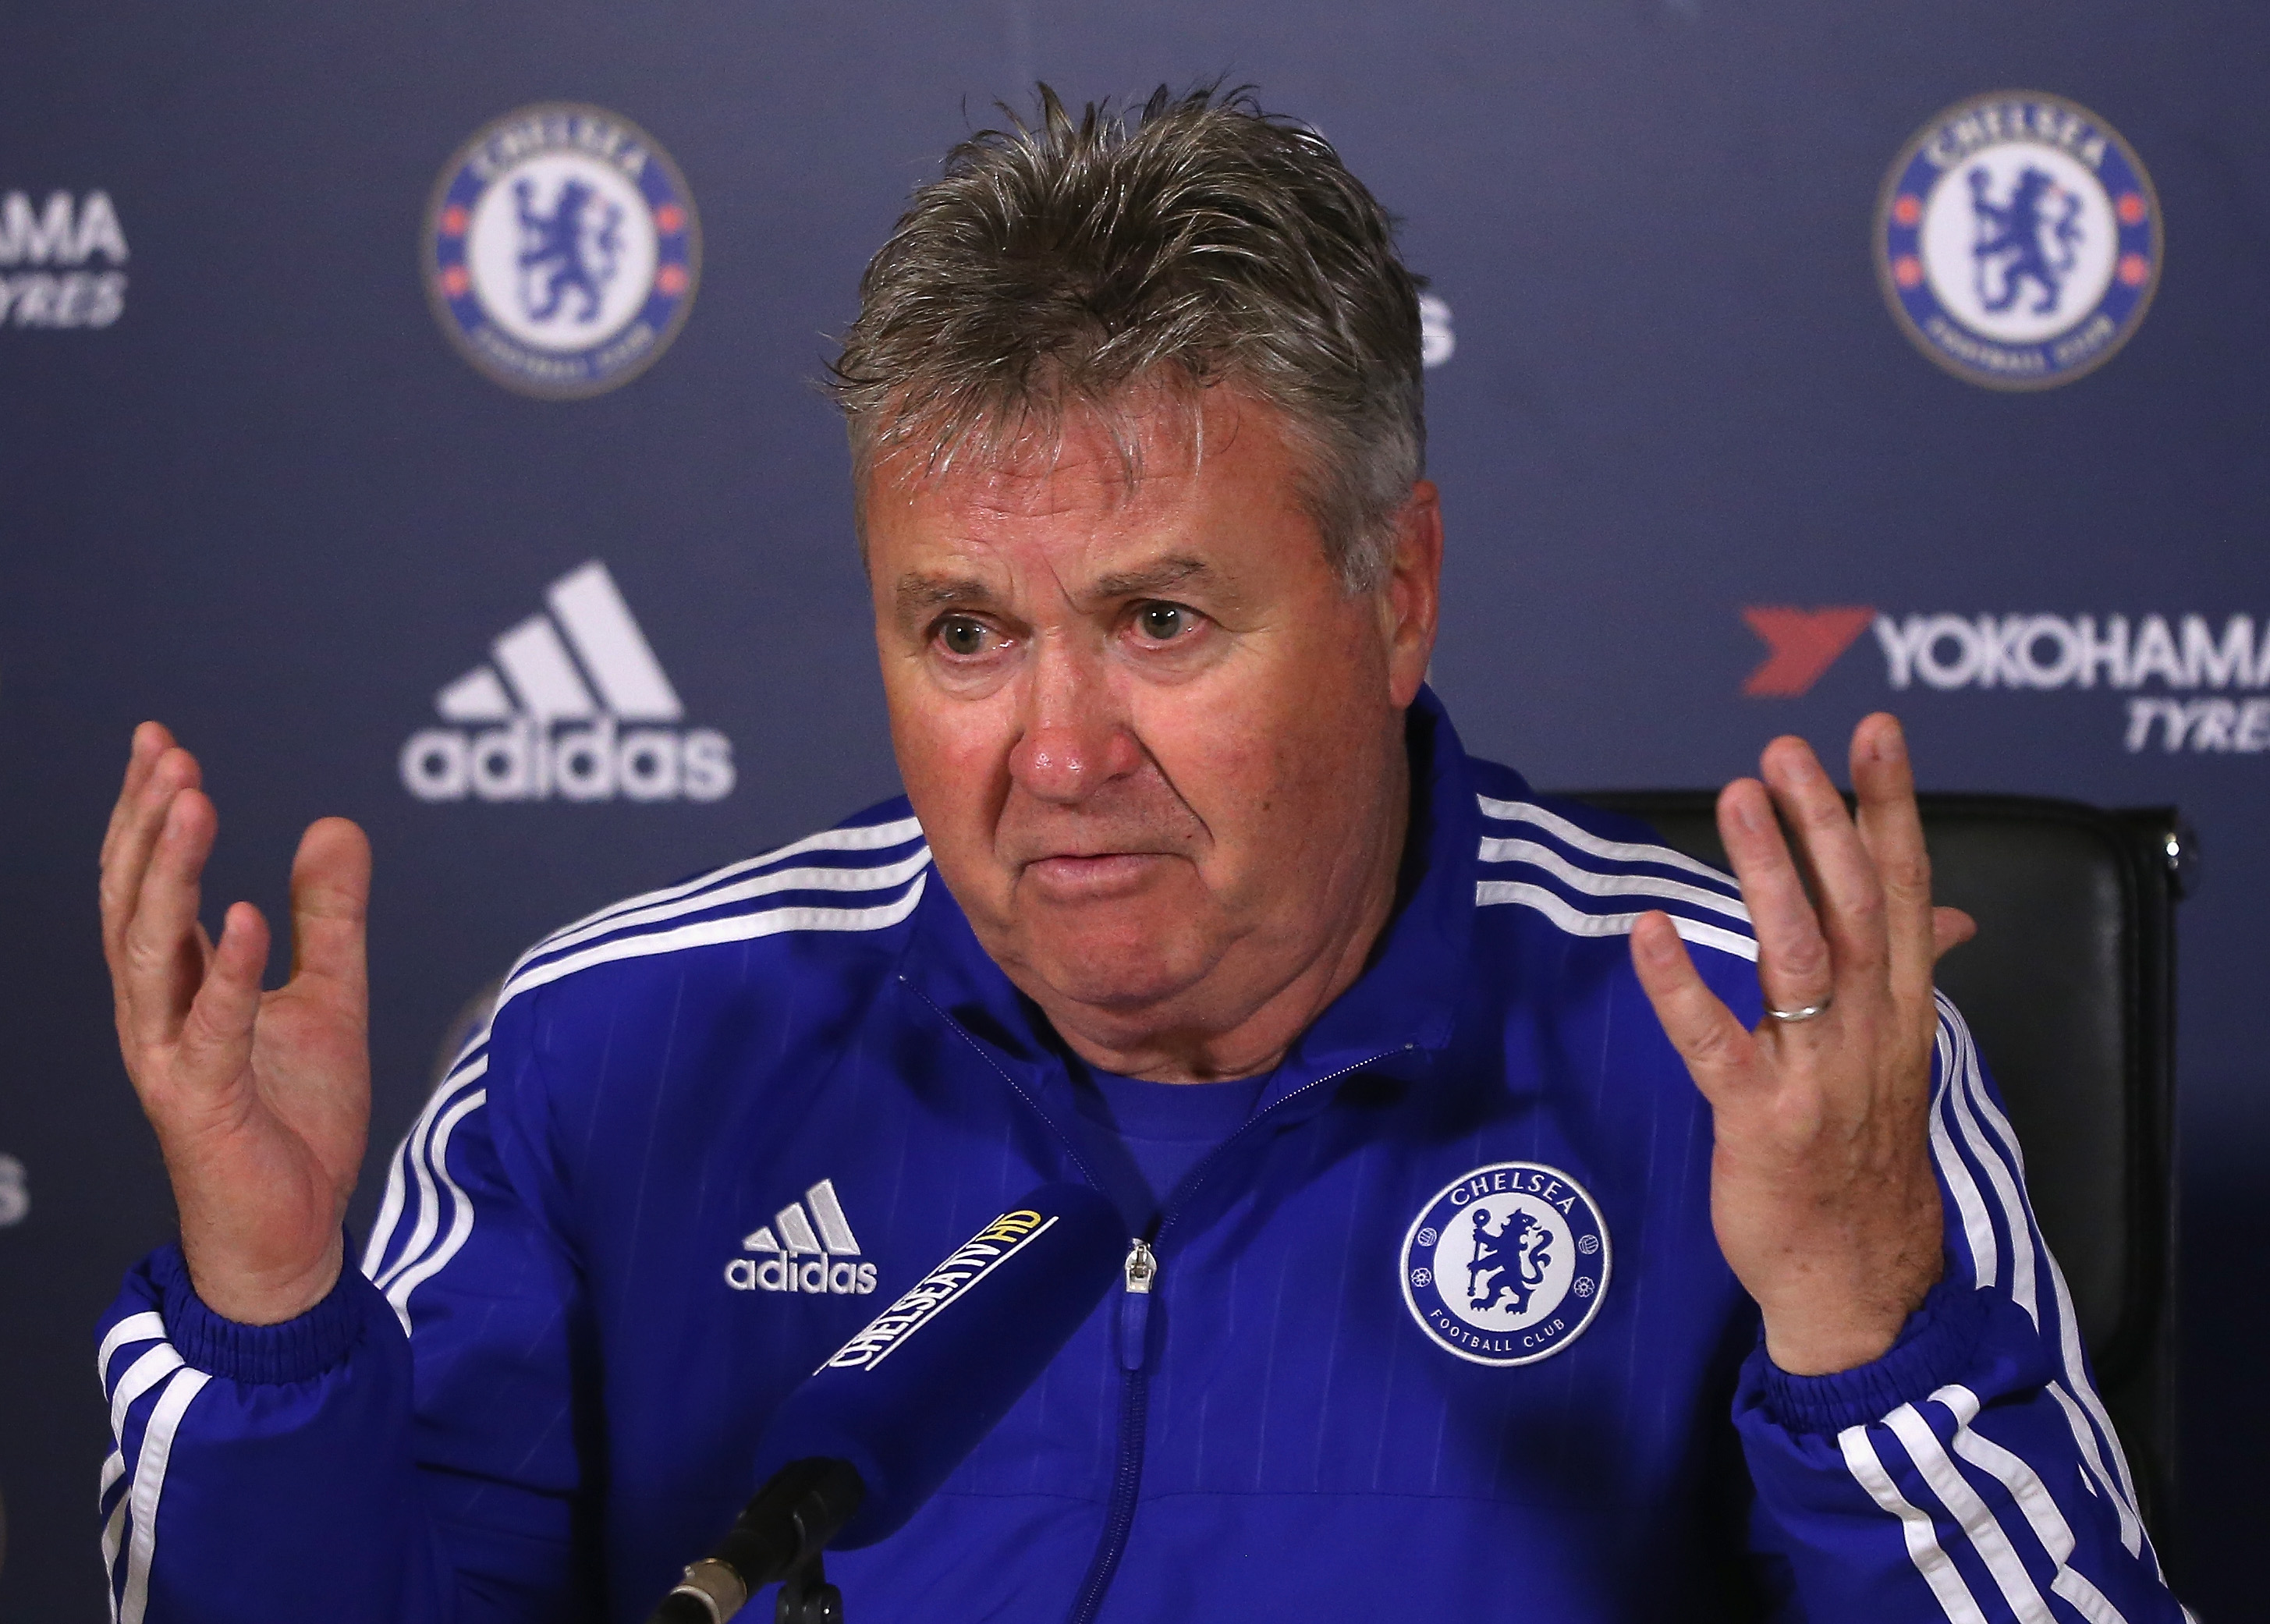 Chelsea have enjoyed a great second half of the season, insists Guus Hiddink